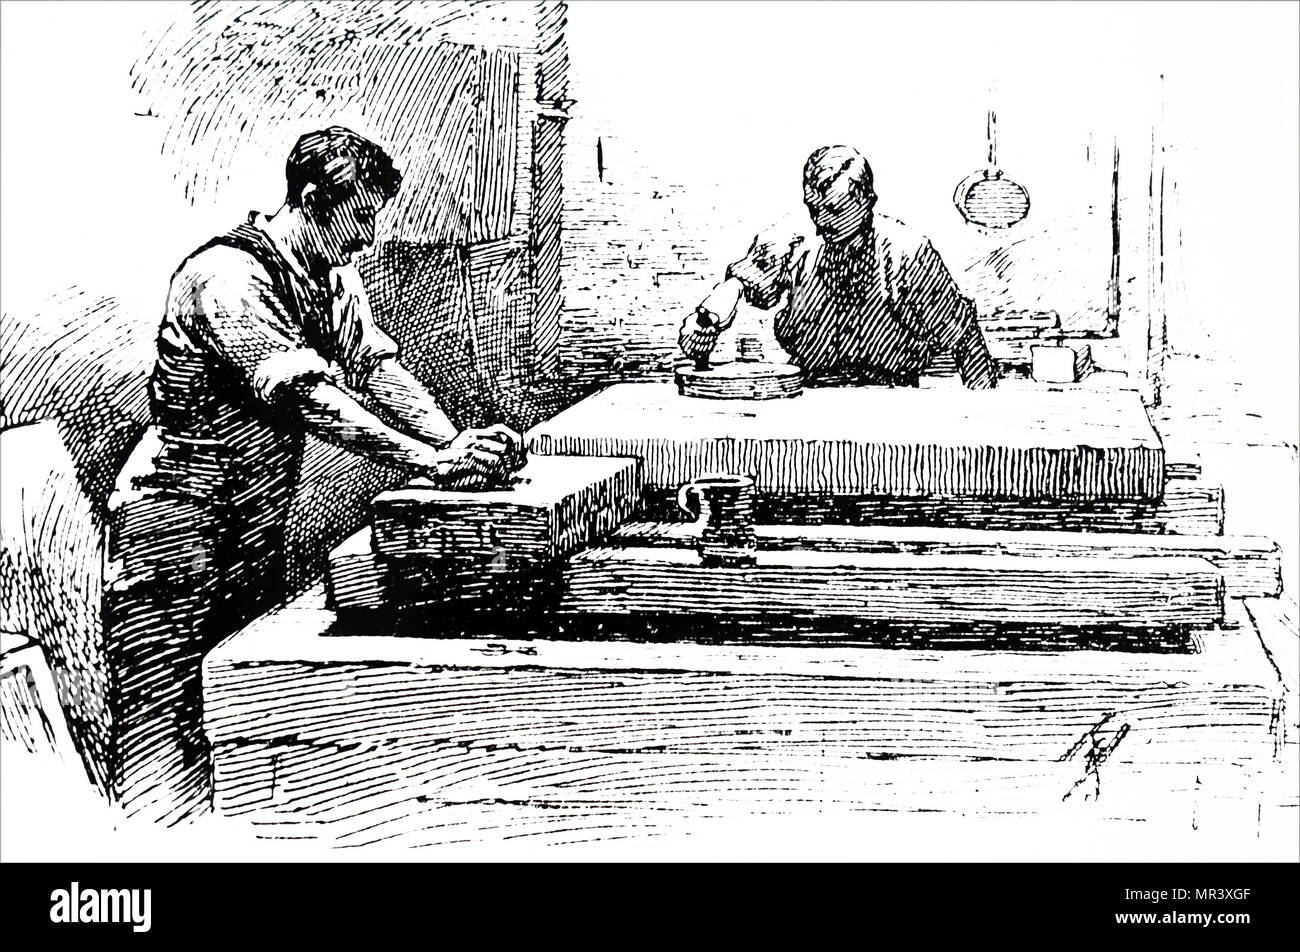 Engraving depicting grinding lithographic stones. Dated 19th century - Stock Image